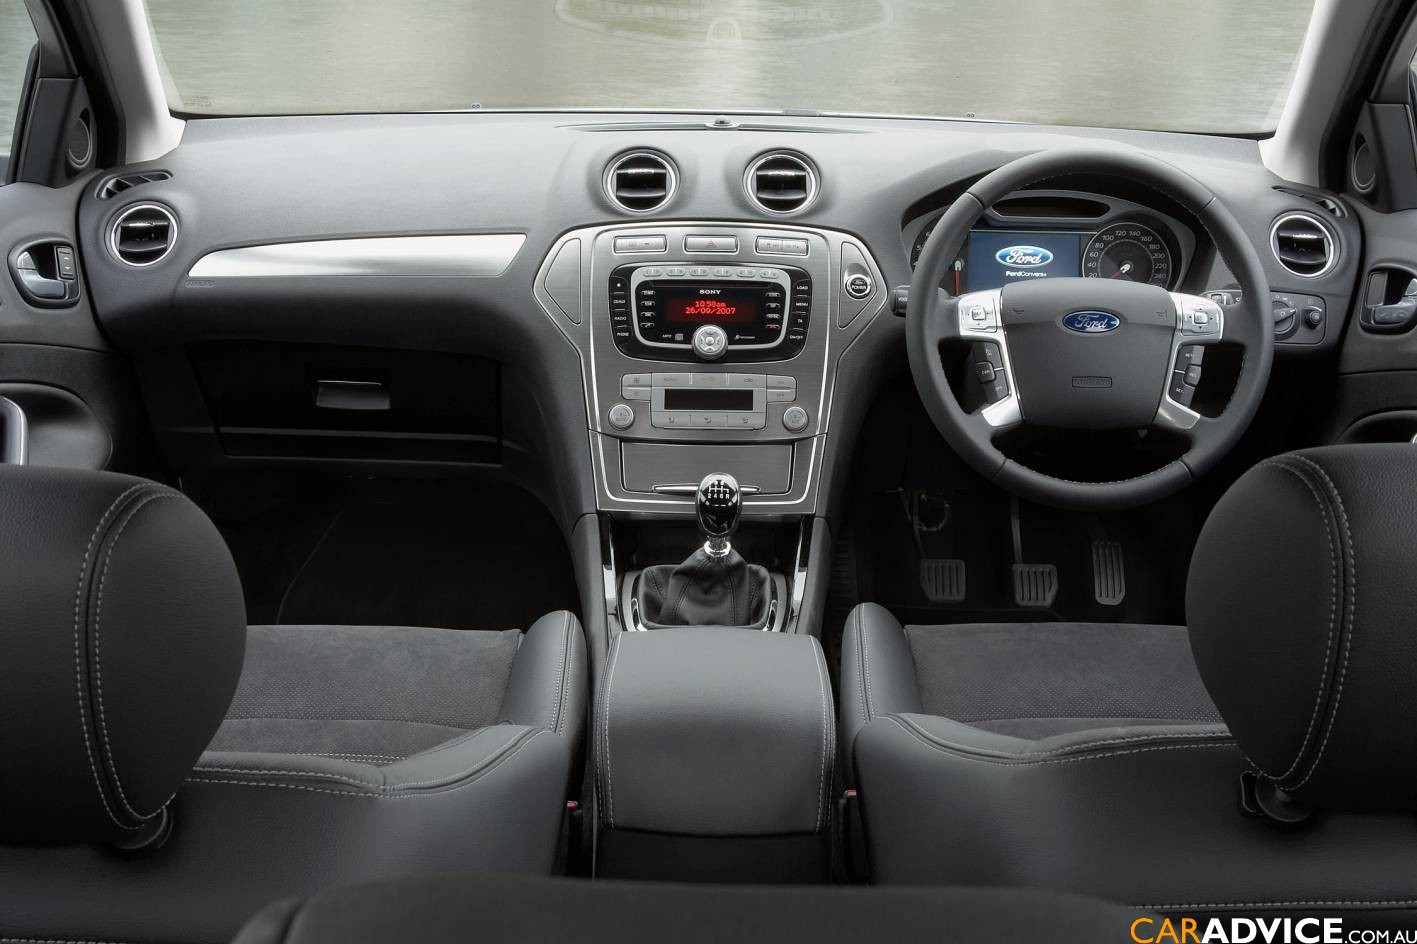 2008 Ford Mondeo #15